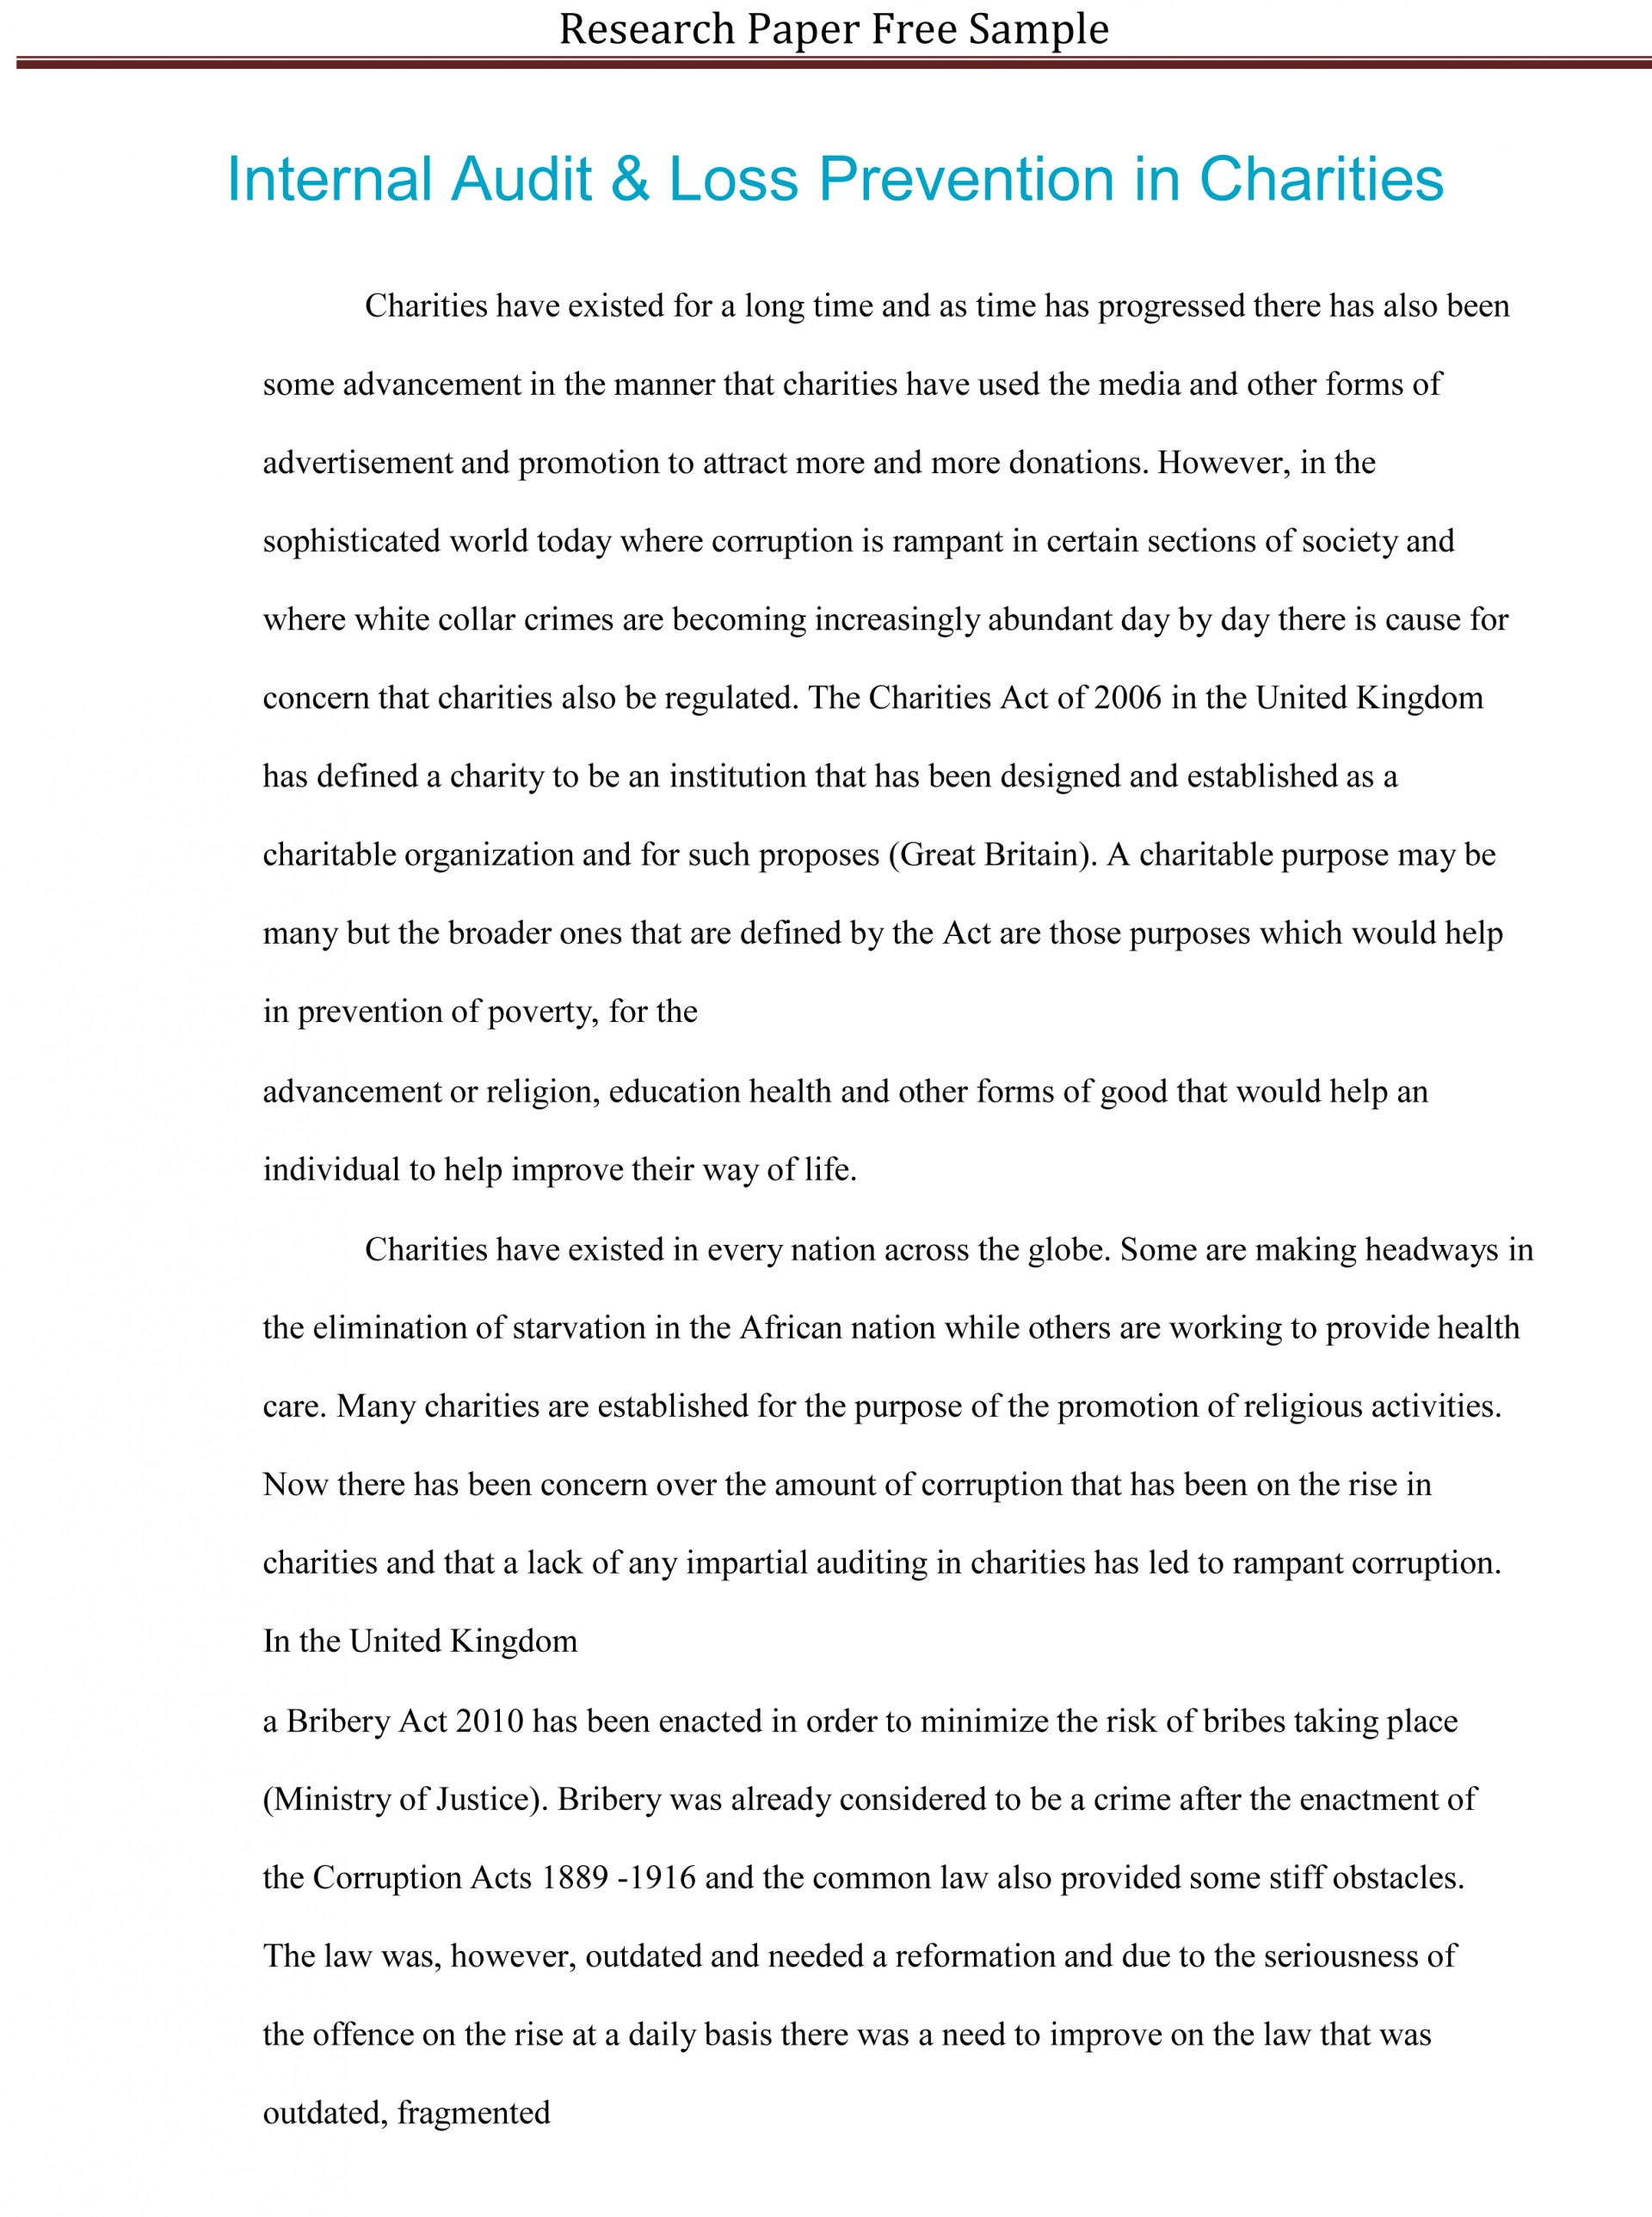 003 Research Paper Sample Awful Free Papers Examples Download Websites Writer 1920